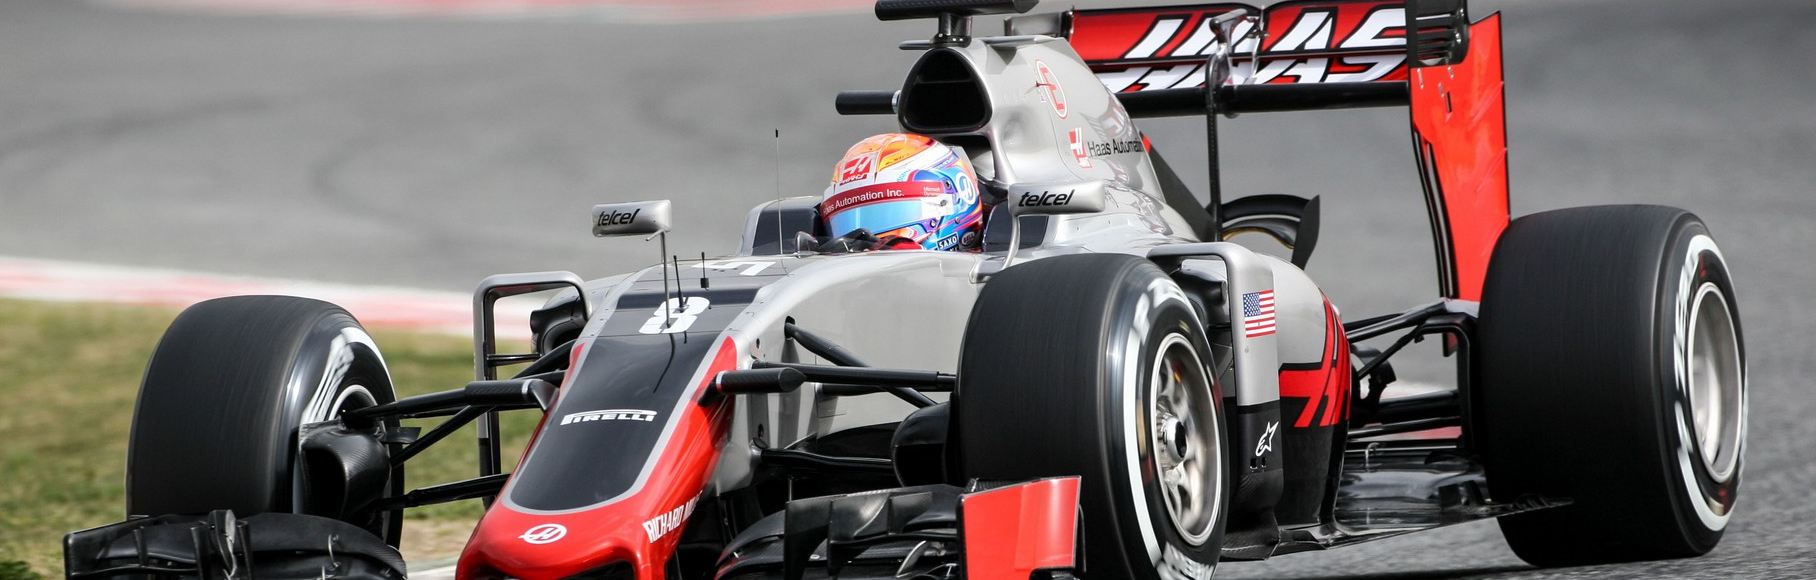 Traditionally speaking, Formula One start up teams struggle to stay competitive as they adjust to the complicated regulations that govern the sport. This does not appear to be the case for Haas Motorsports as they have earned championship points in the first two rounds of the 2016 season. Haas driver Romain Grosjean finds himself sitting 5th in the championship points above title favorite and four-time Formula One World Champion, Sebastian Vettel. This incredible feat comes as a surprise to everyone in motorsports and is setting up to be one of the biggest stories of the year.